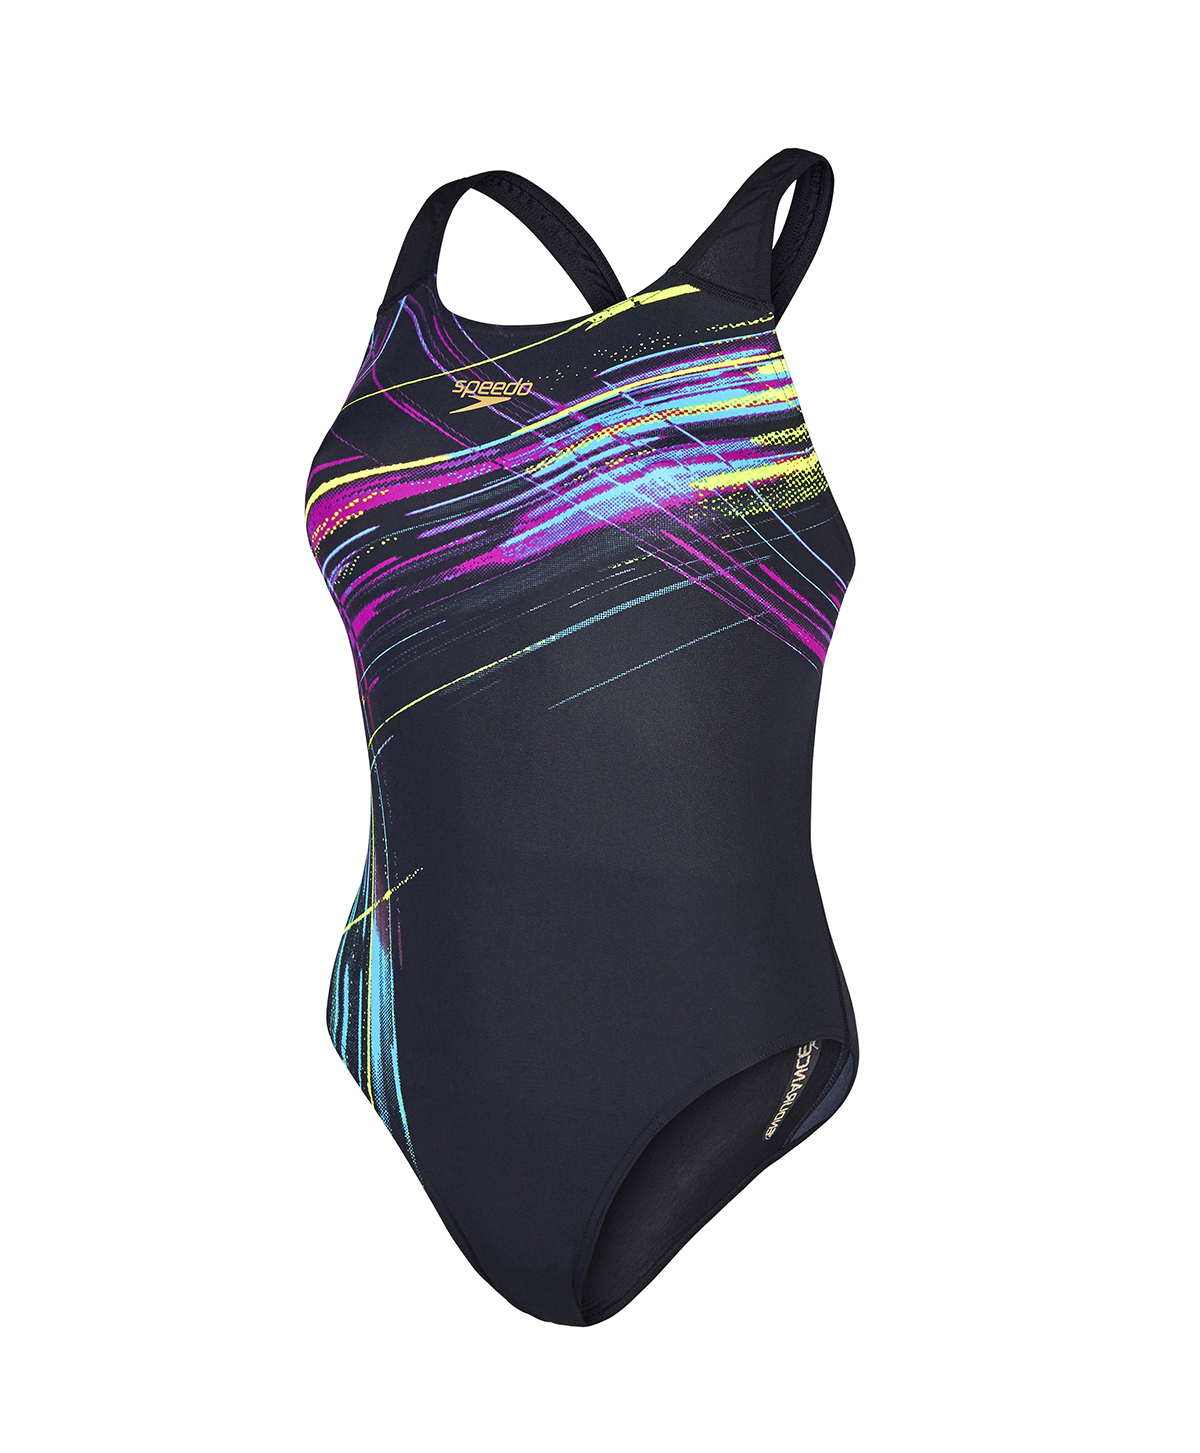 Speedo Ladies Placement Powerback - More colour options